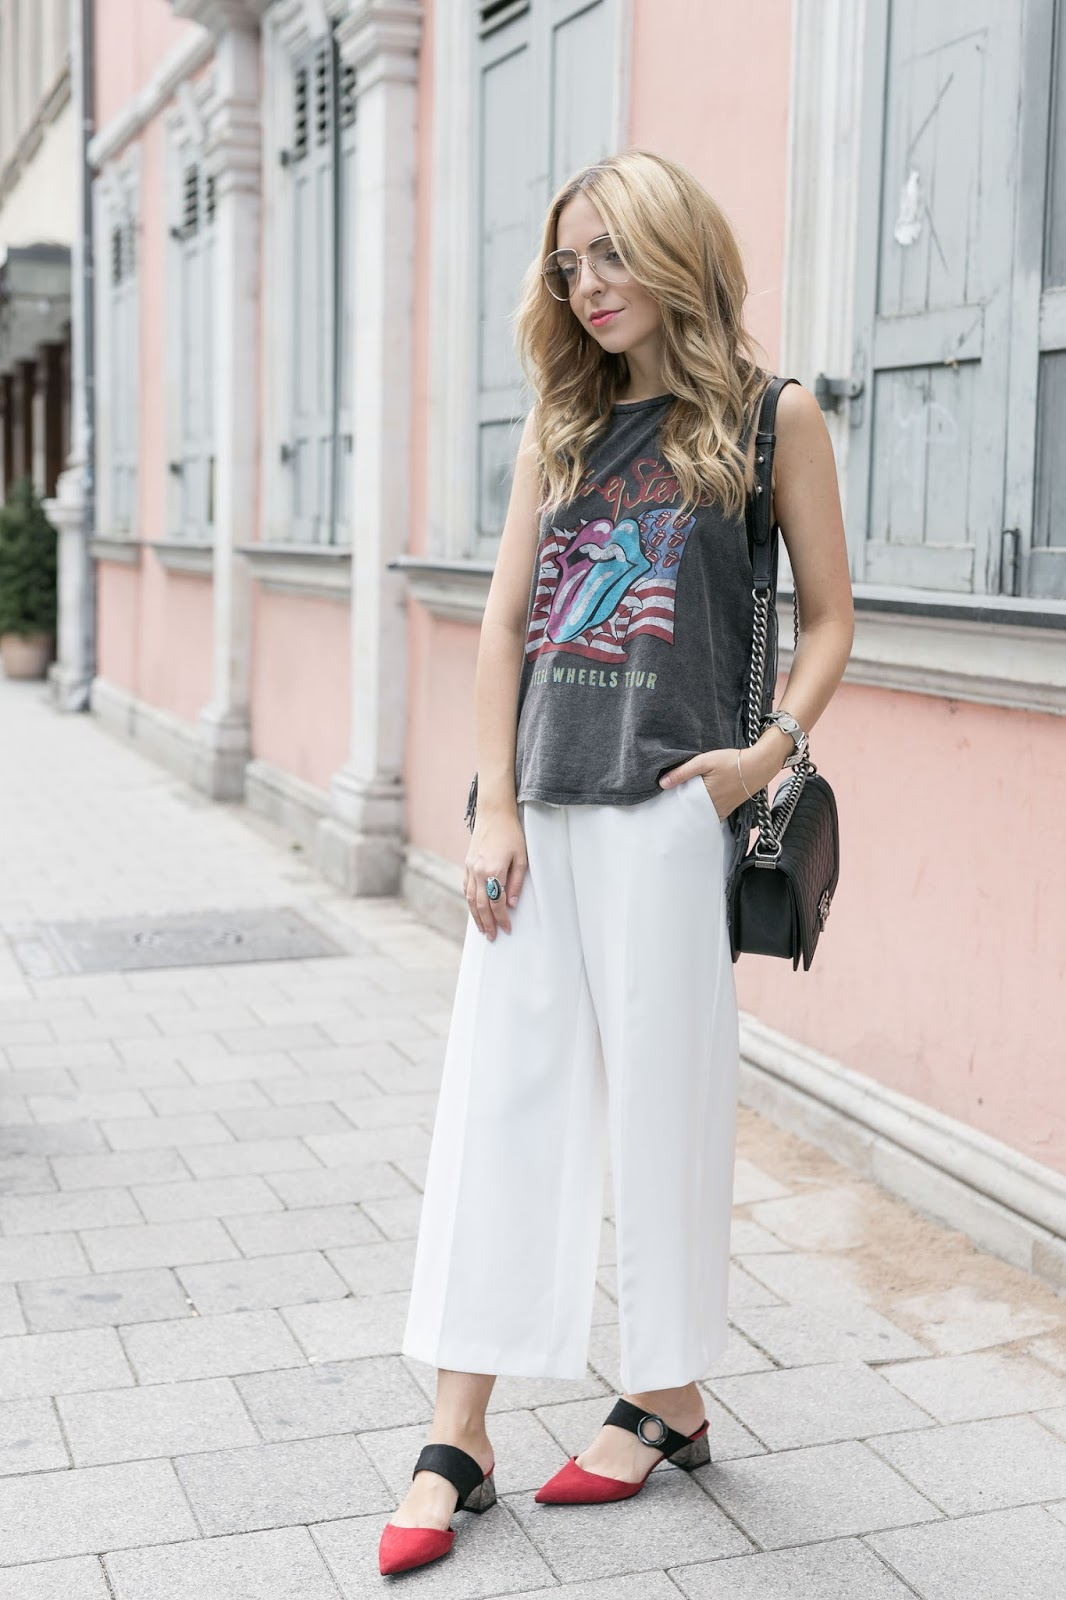 Want Get Repeat Blog Band Shirt Outfit